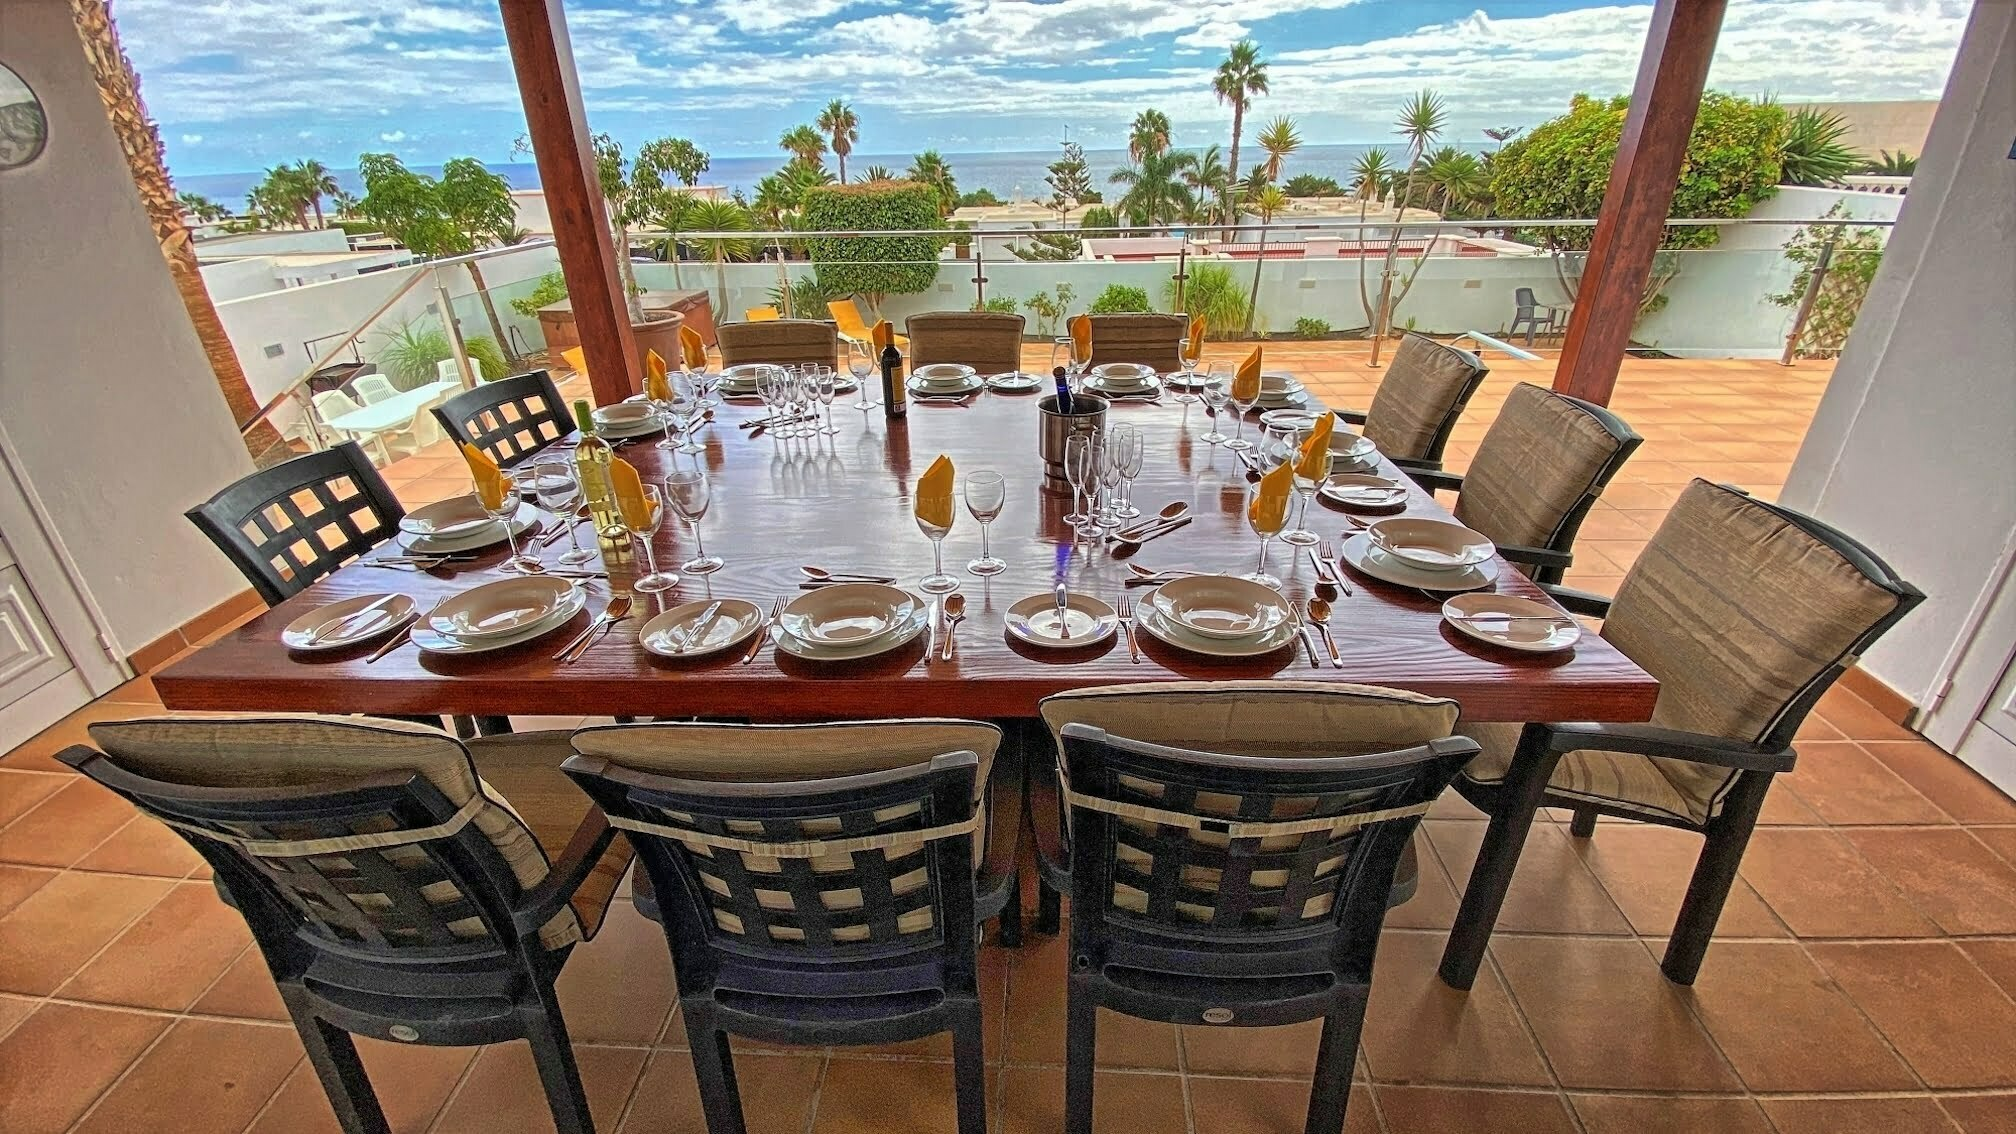 Villa Tiempo - Outside Dining Table With Panoramic Views